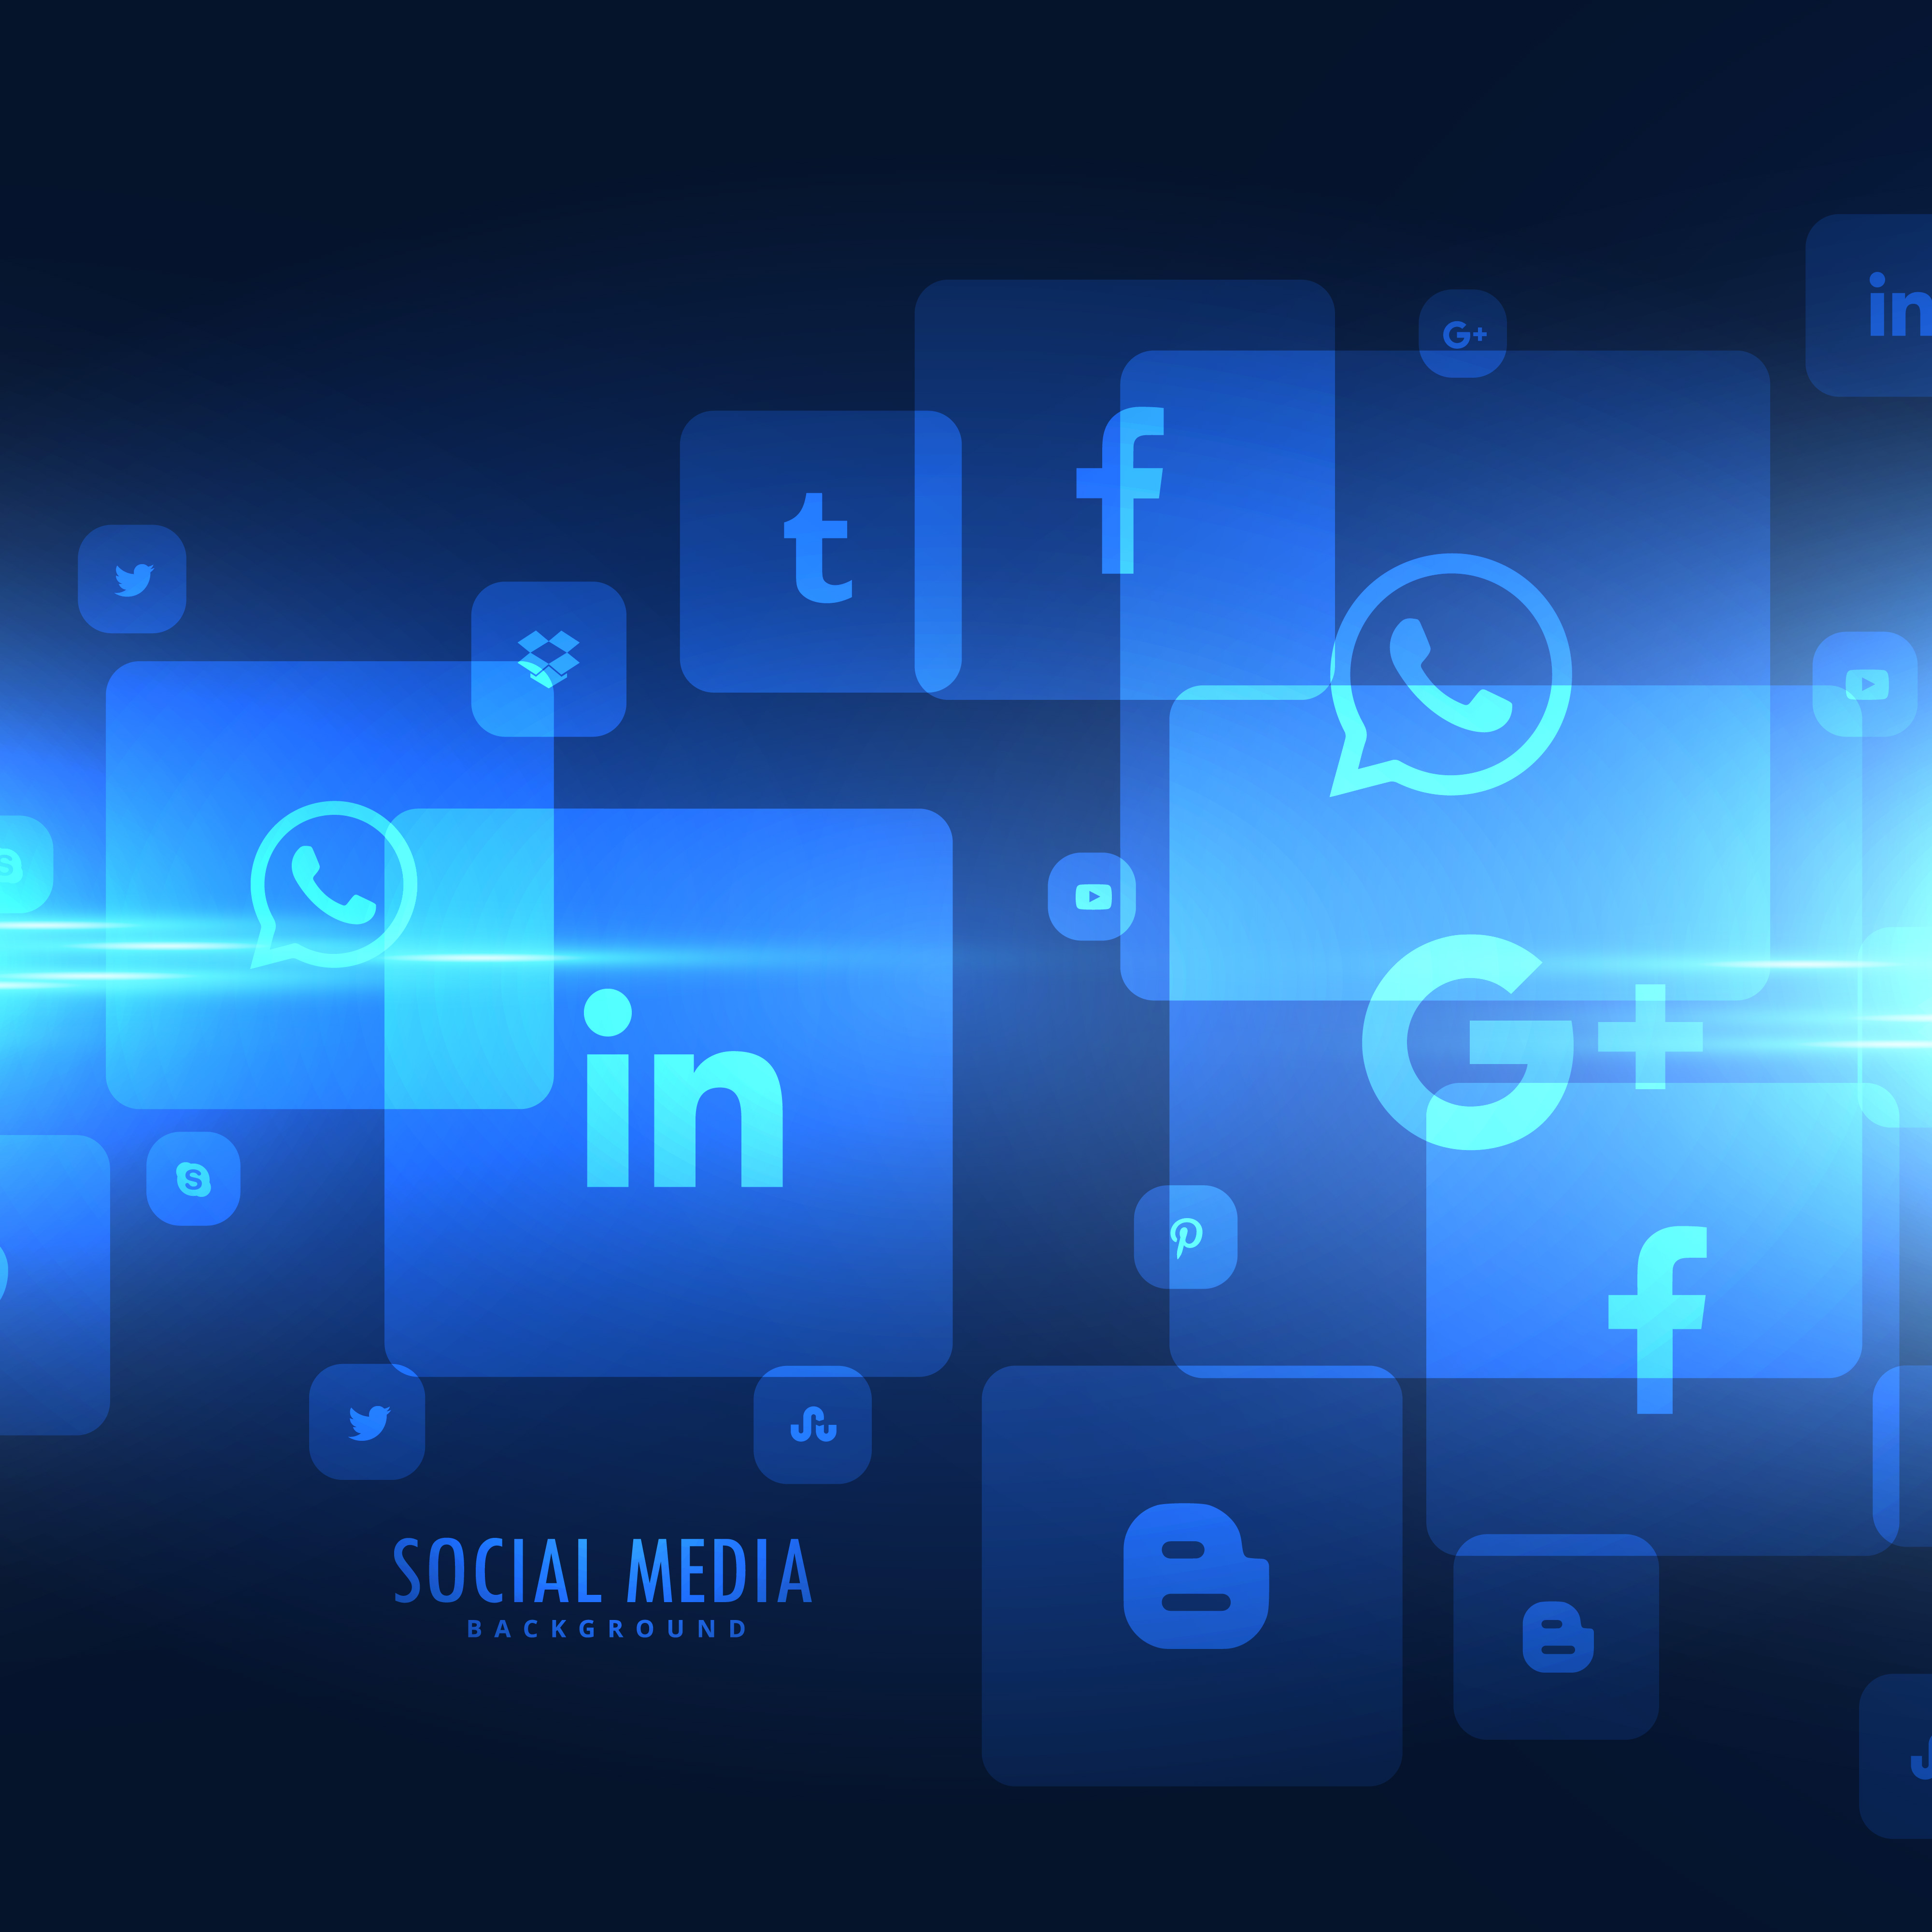 vector-techno-style-social-media-icons-background.jpg